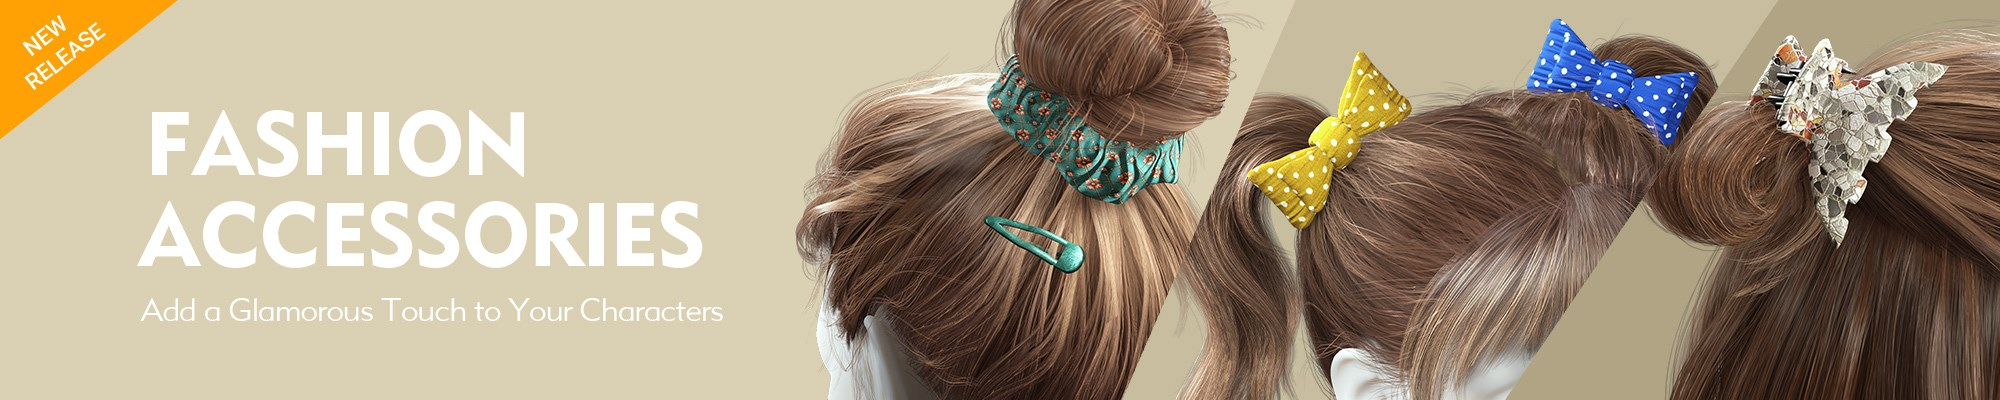 Fashion Accessories - Add Glamorous Touch to Your Characters